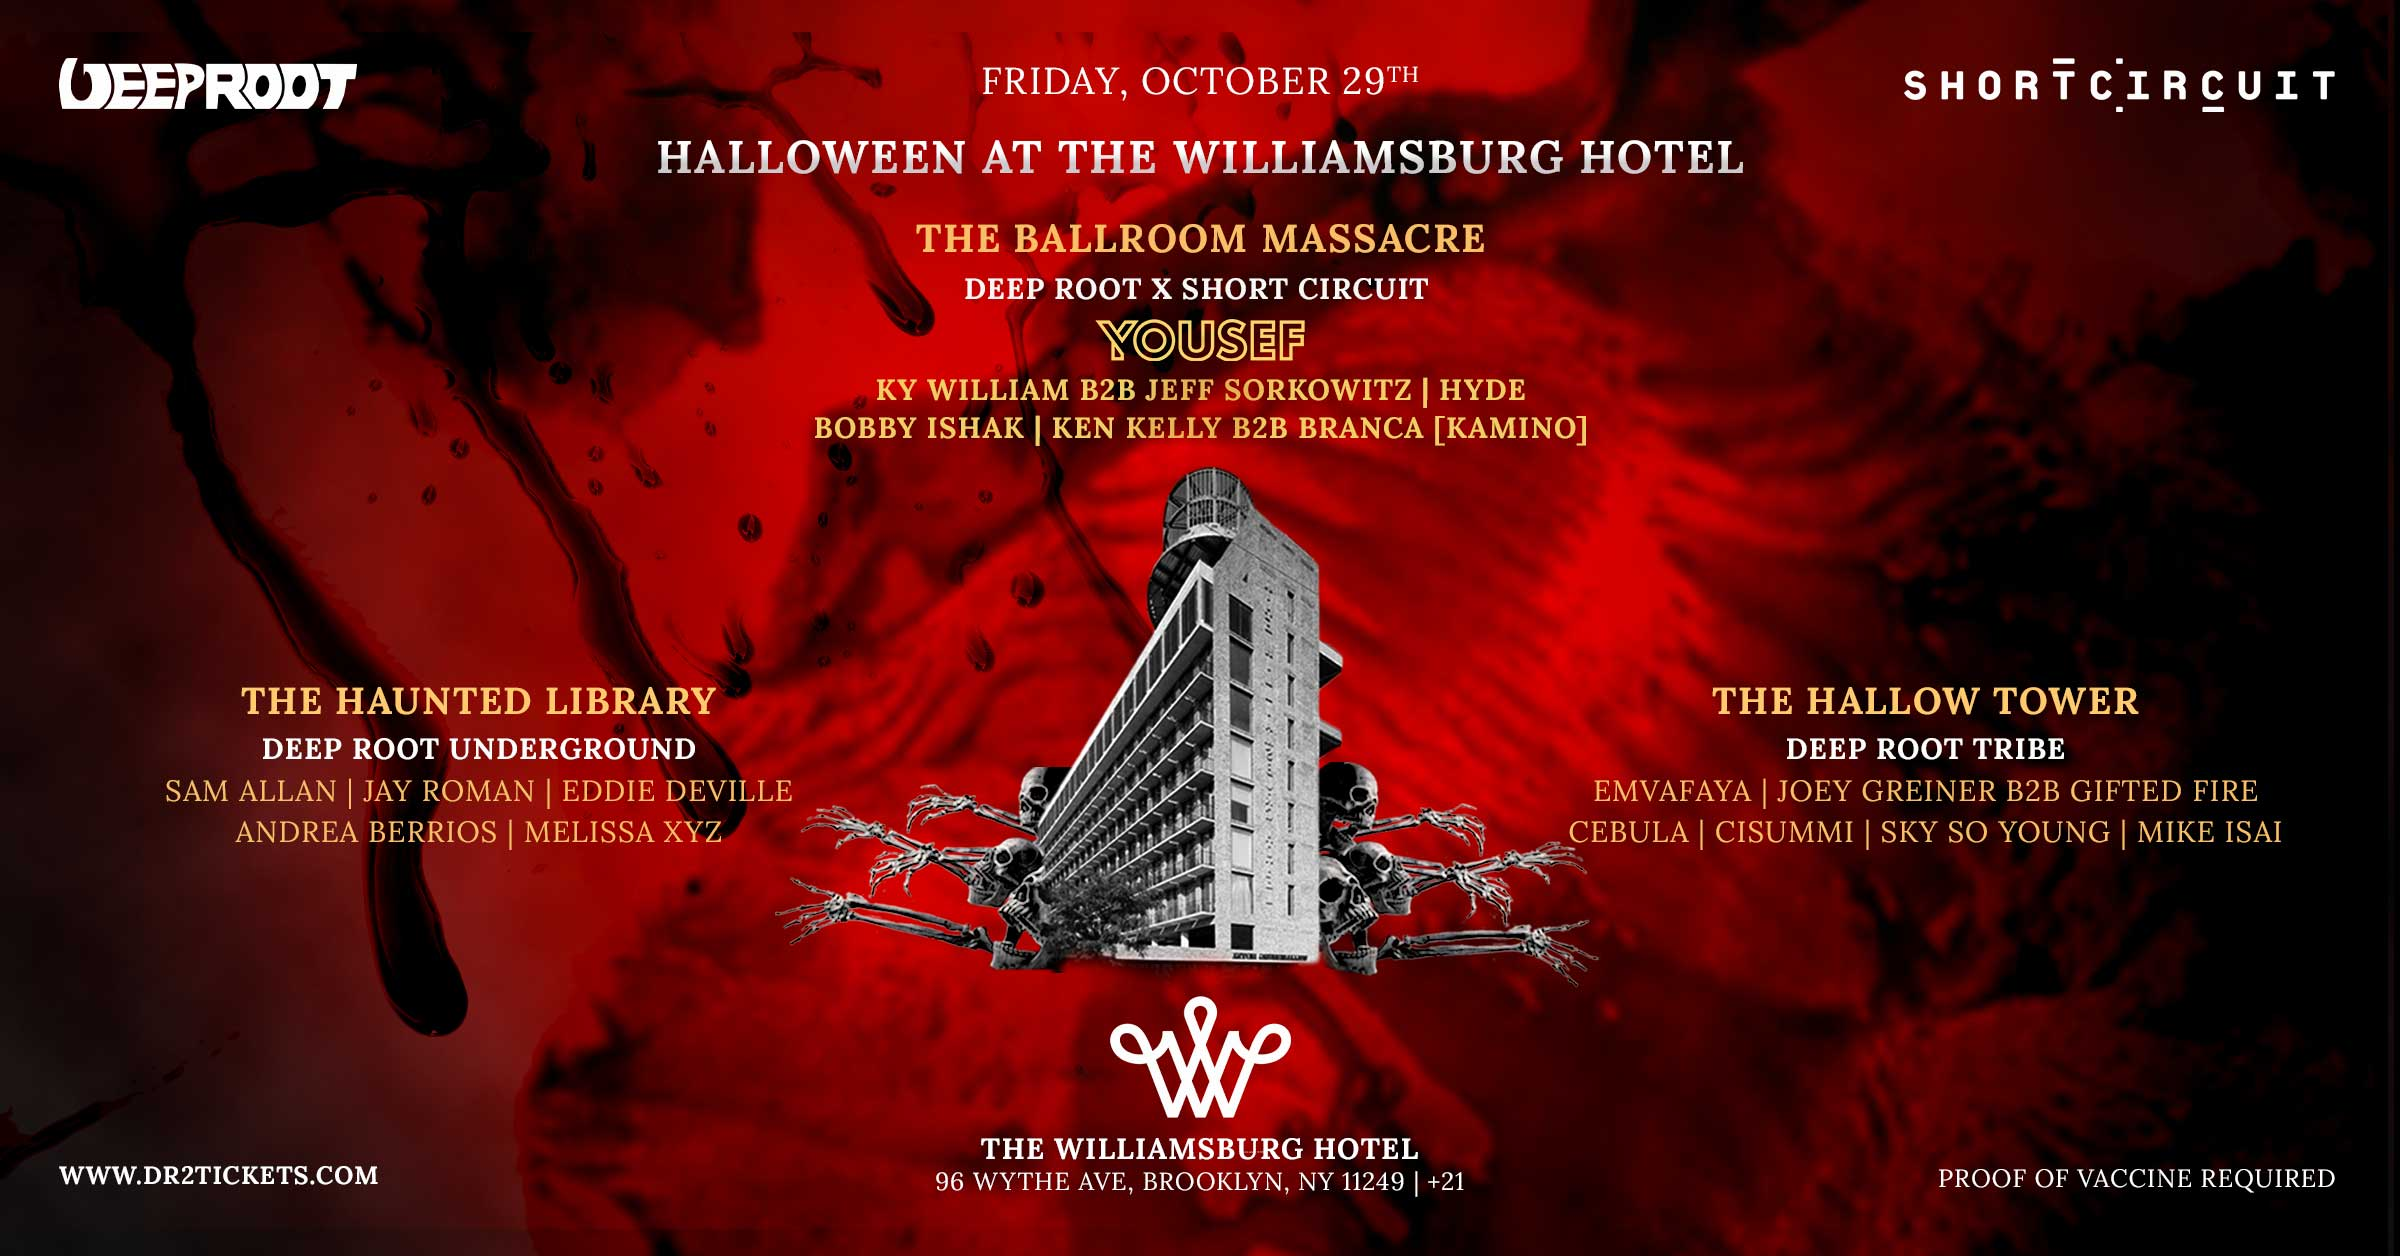 Halloween At The Williamsburg Hotel Chronicle I ft. Yousef [10/29]